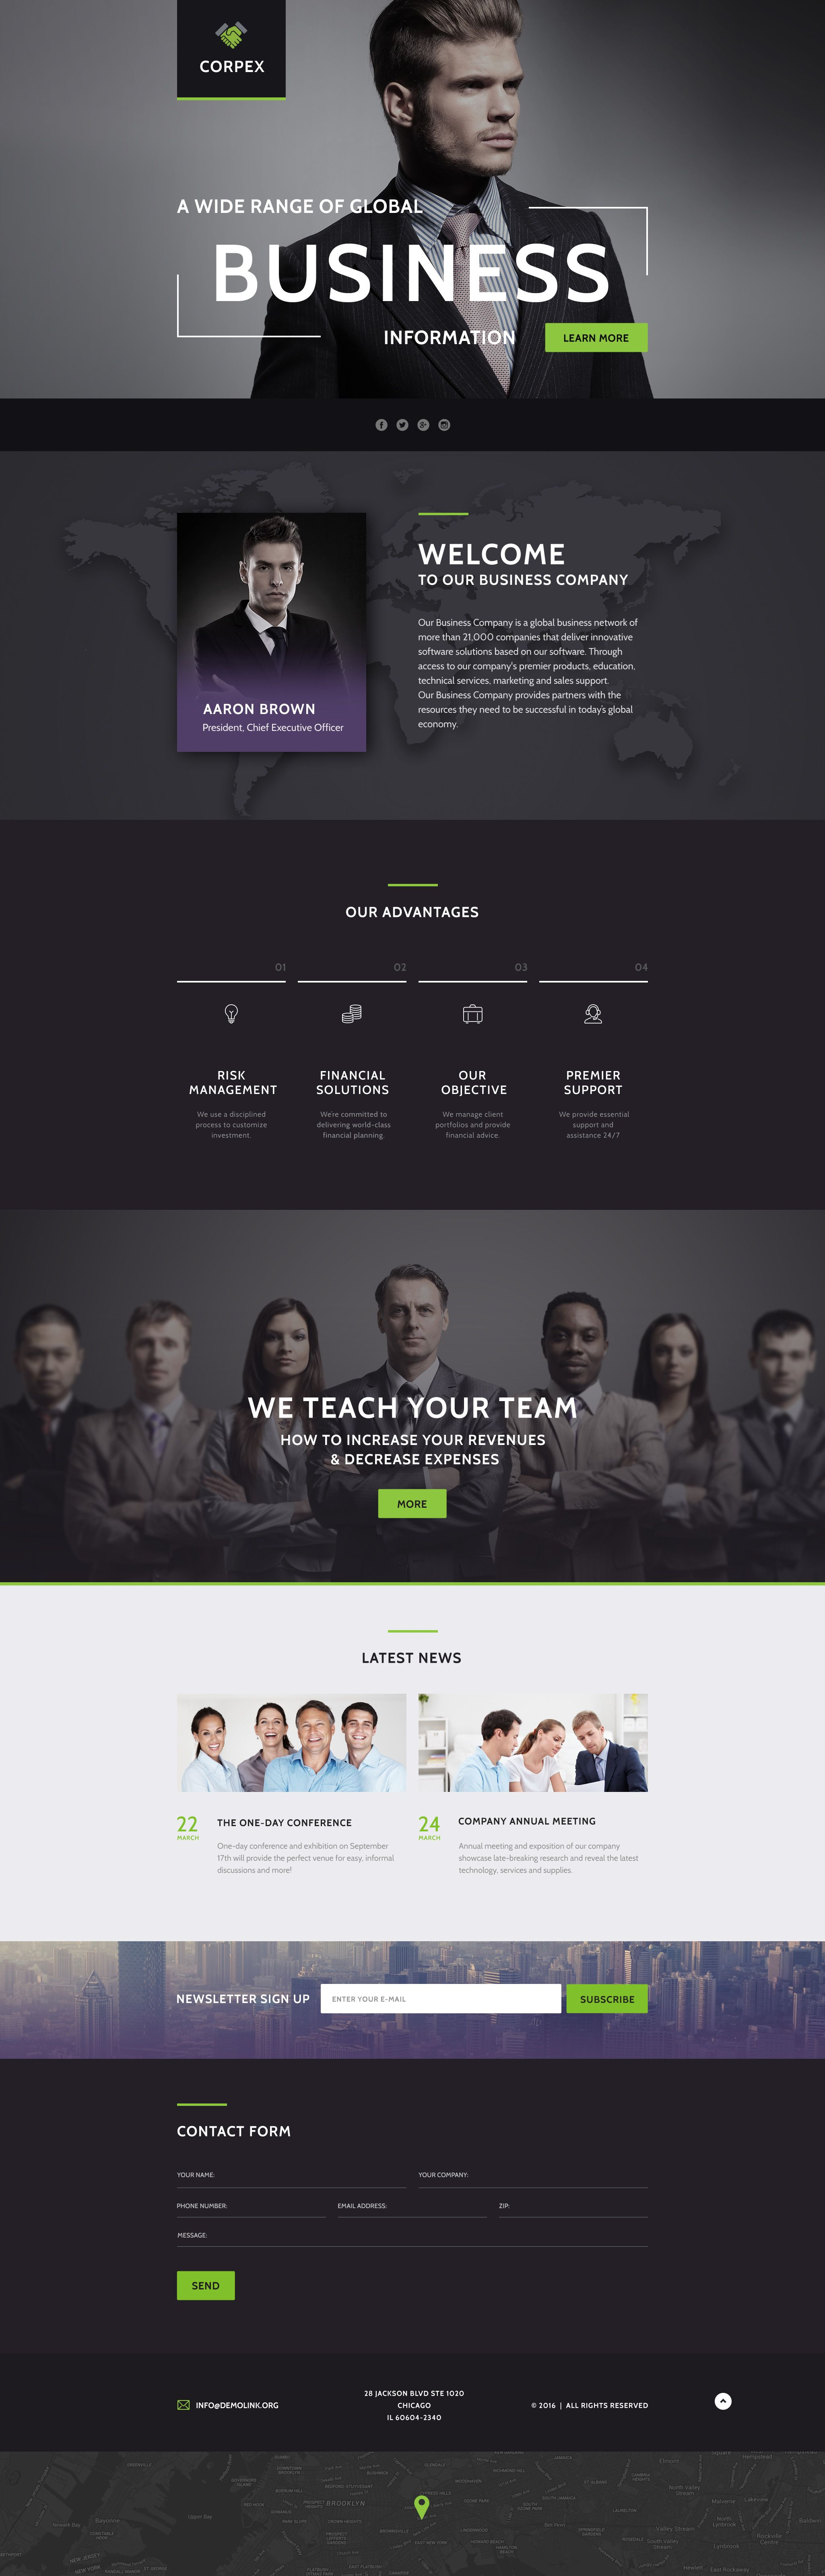 Business Responsive Landing Page Template   Business, Website and ...